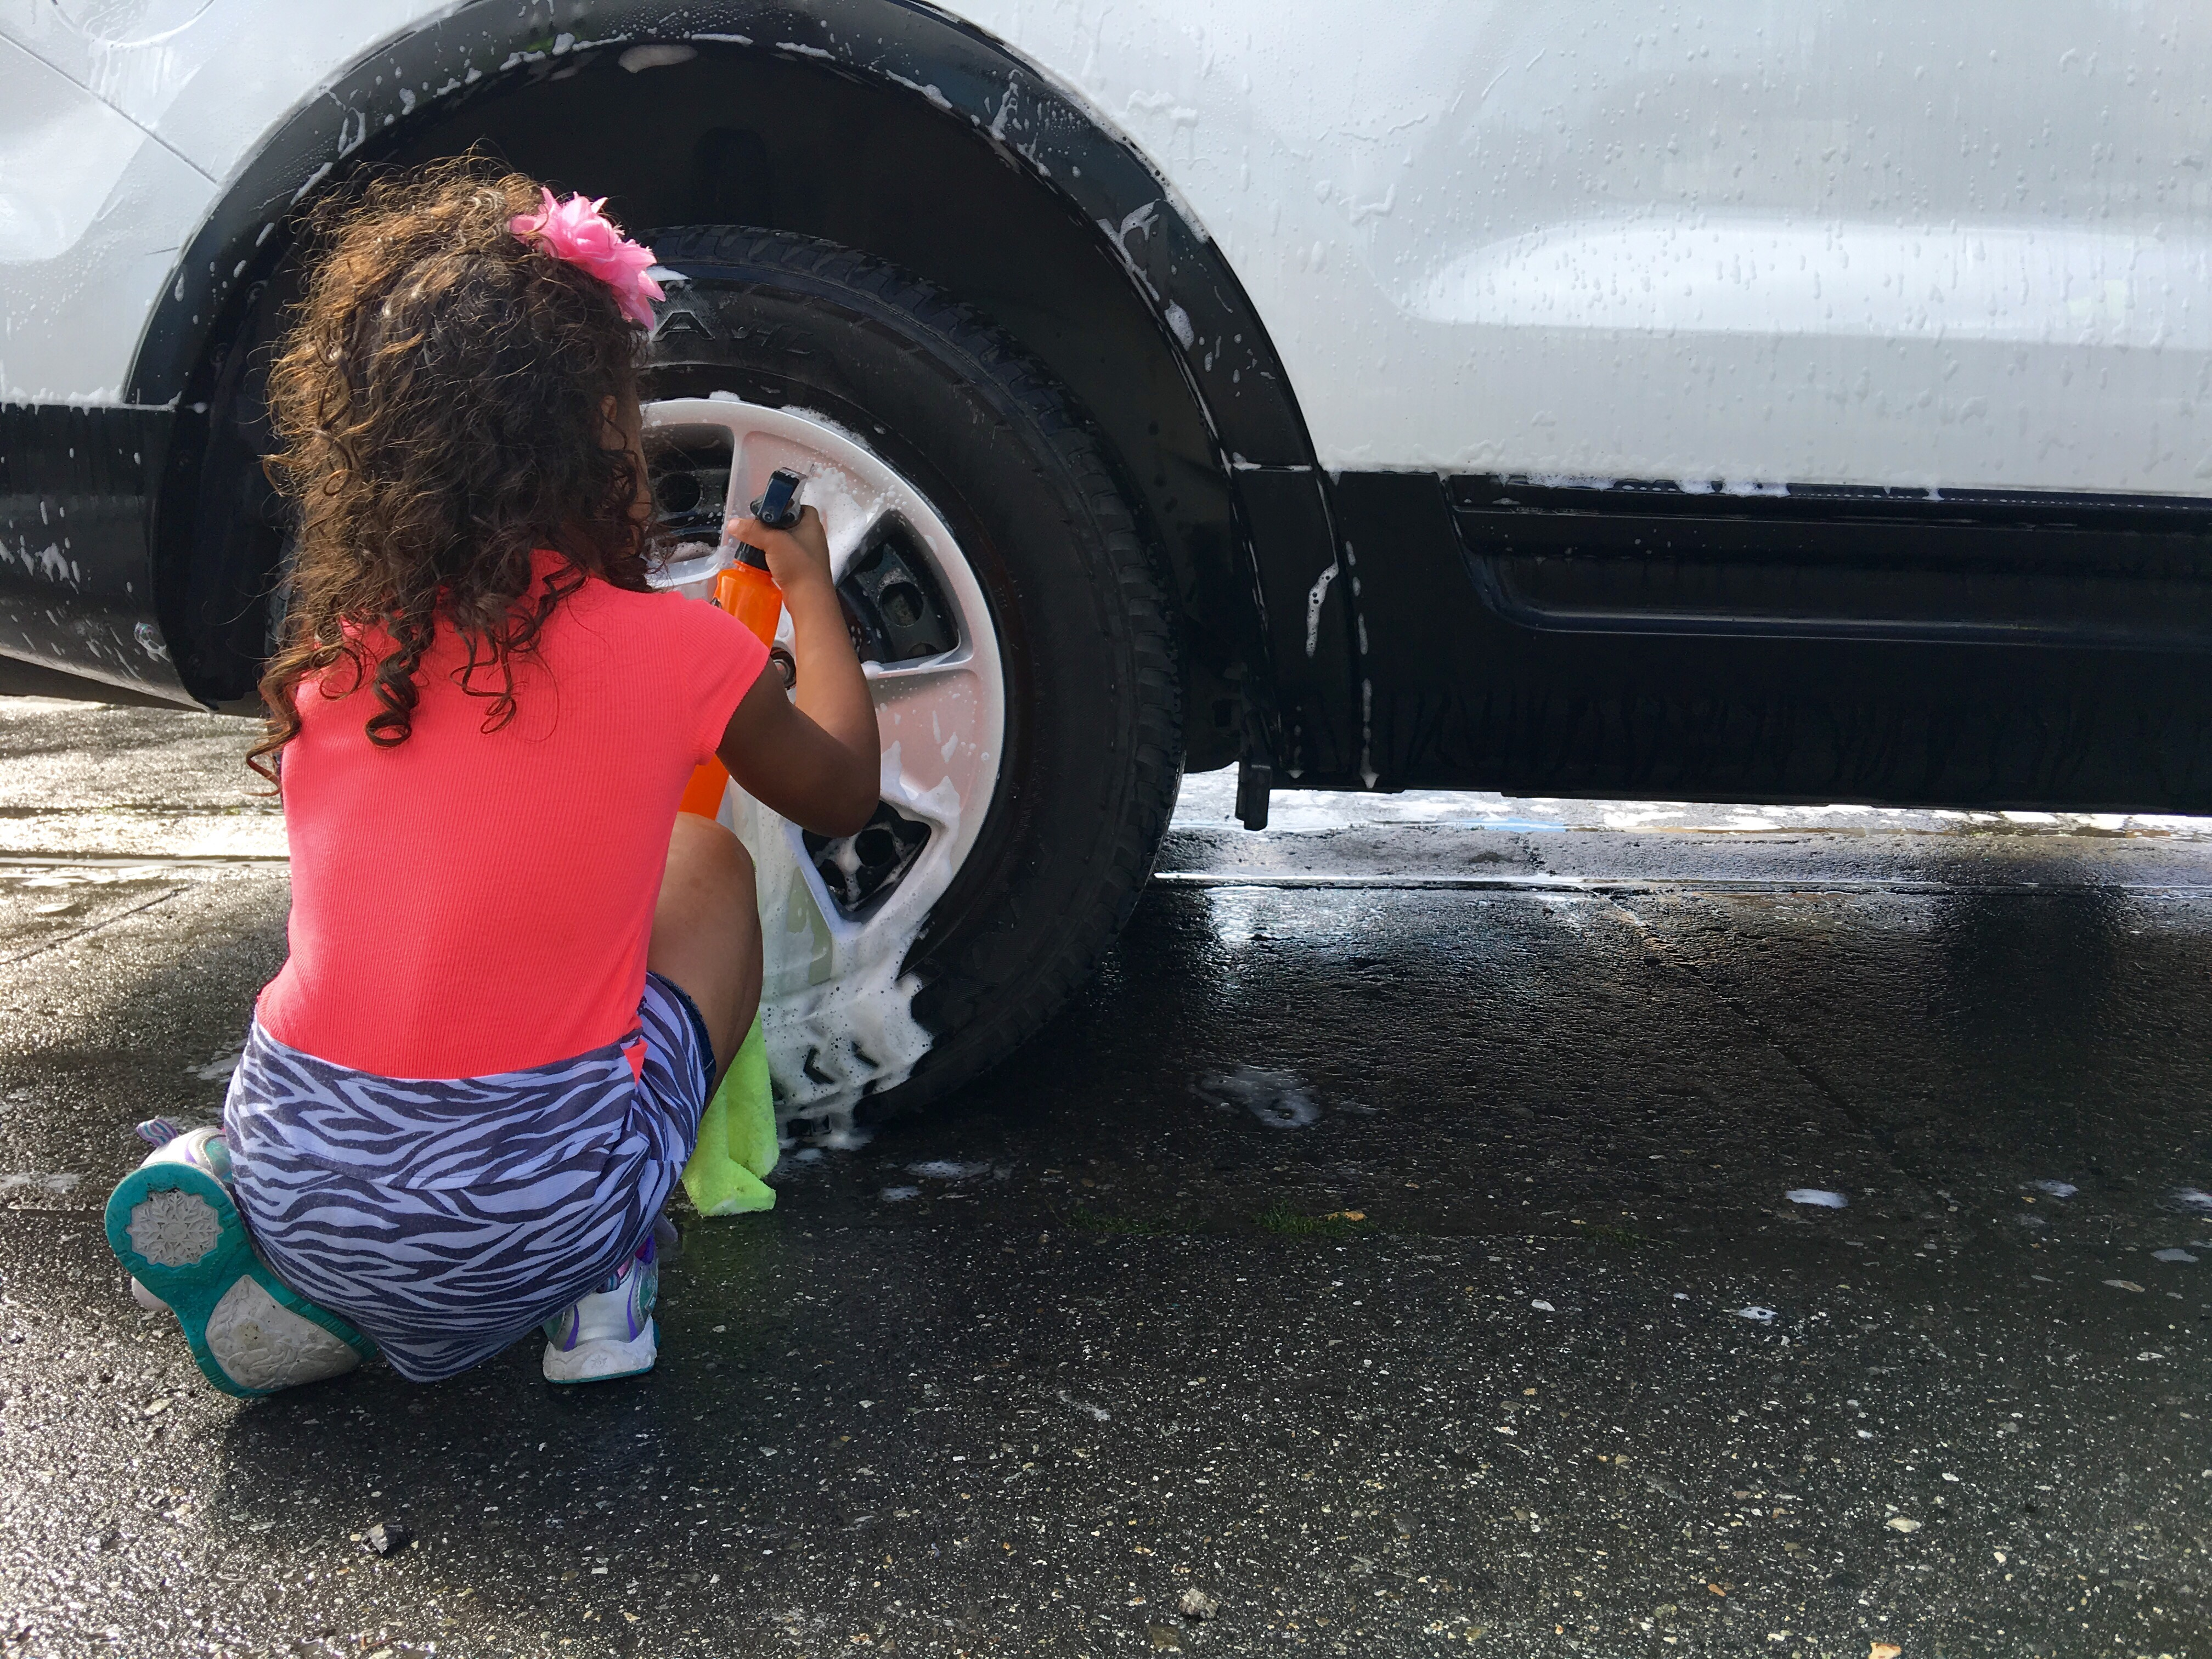 Car People: On Price Street, Washing Cars With Police